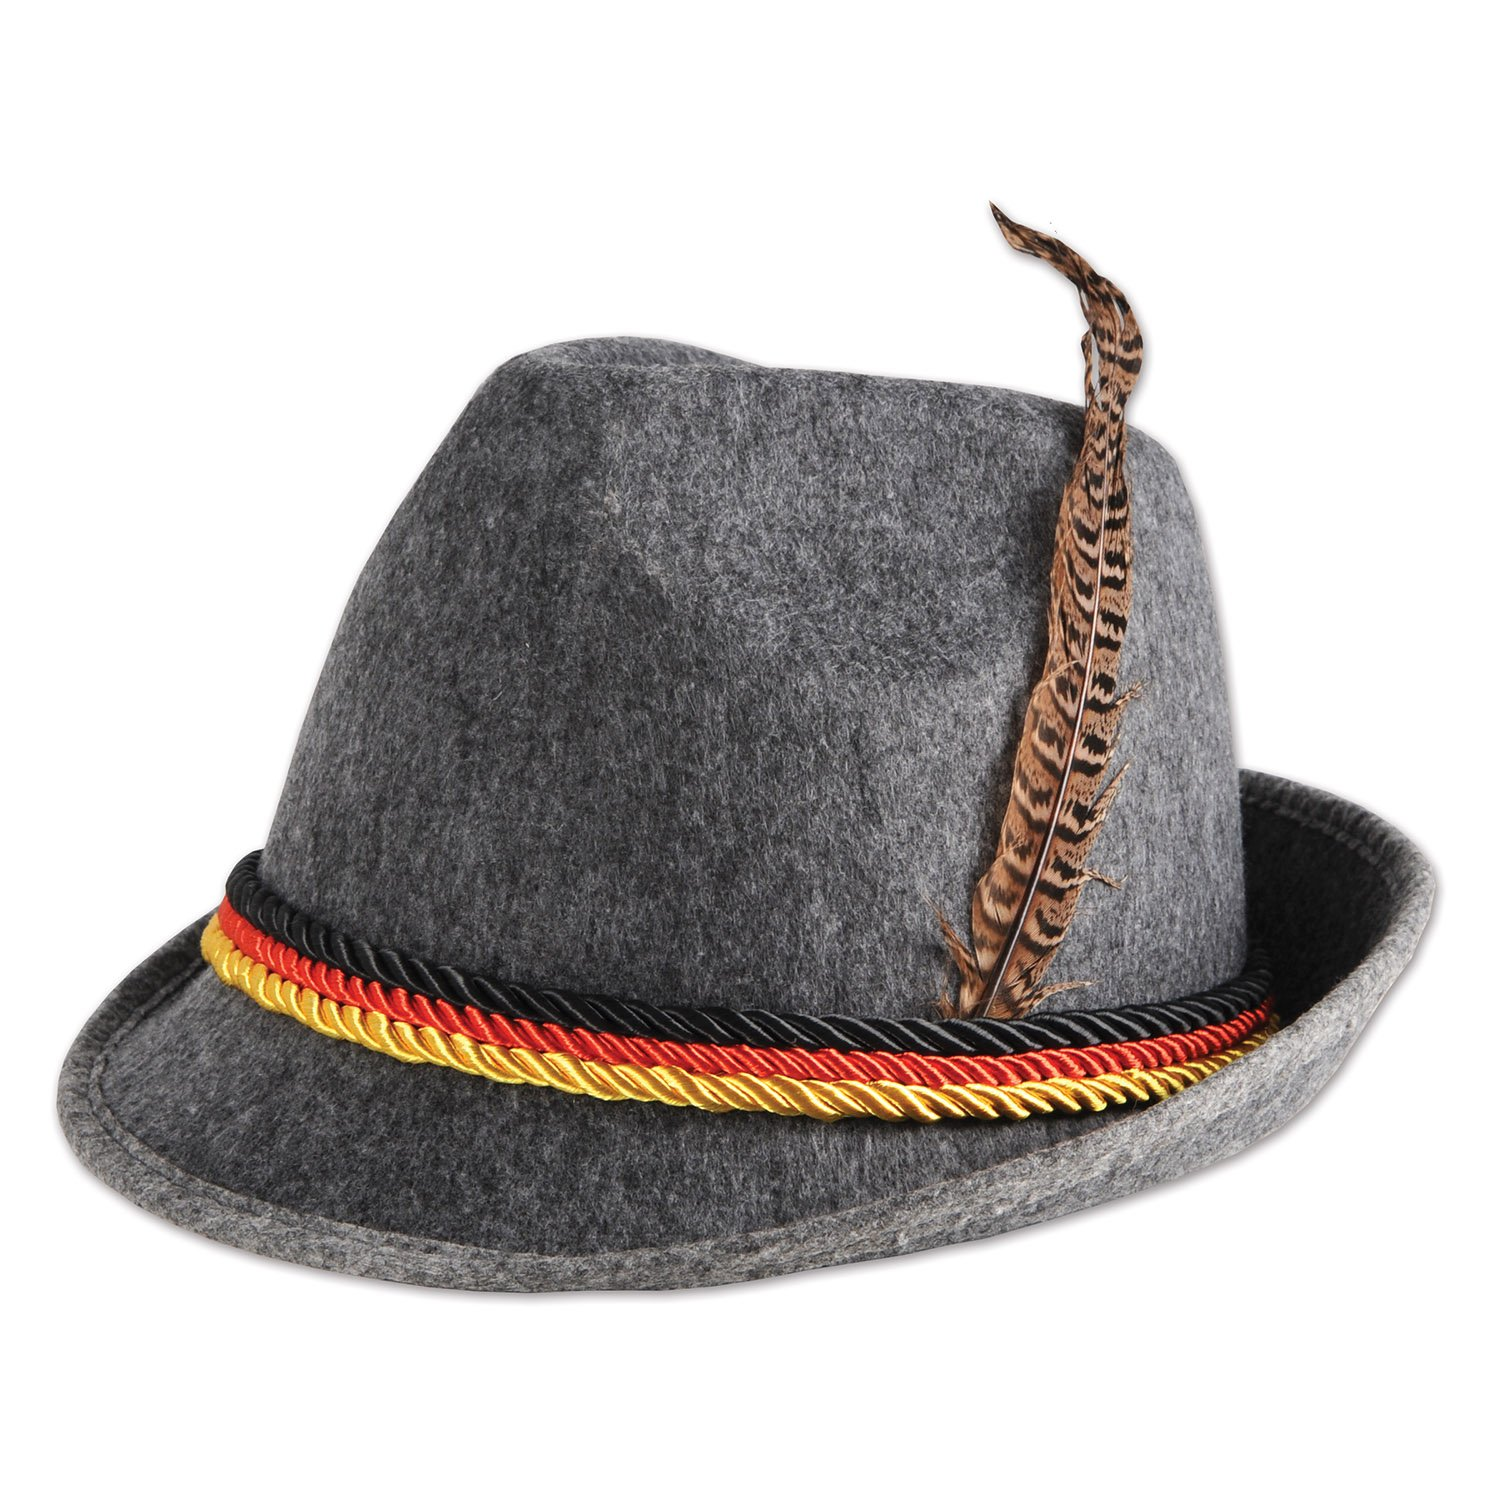 Beistle - German Alpine Hat Gray One Size 60243